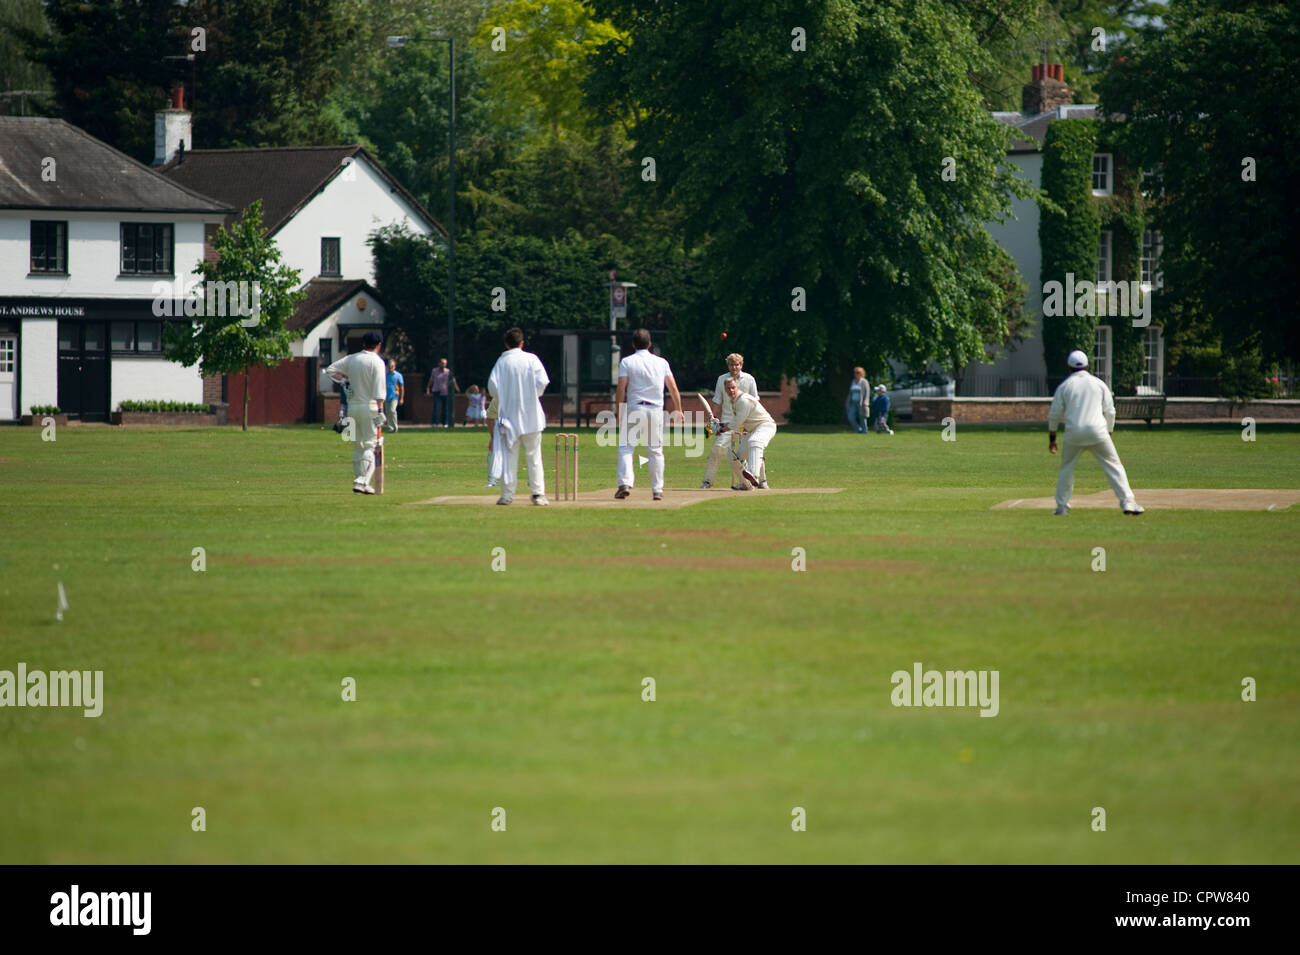 Village cricket match at Ham Common in the London Borough of Richmond upon Thames, England, UK - Stock Image